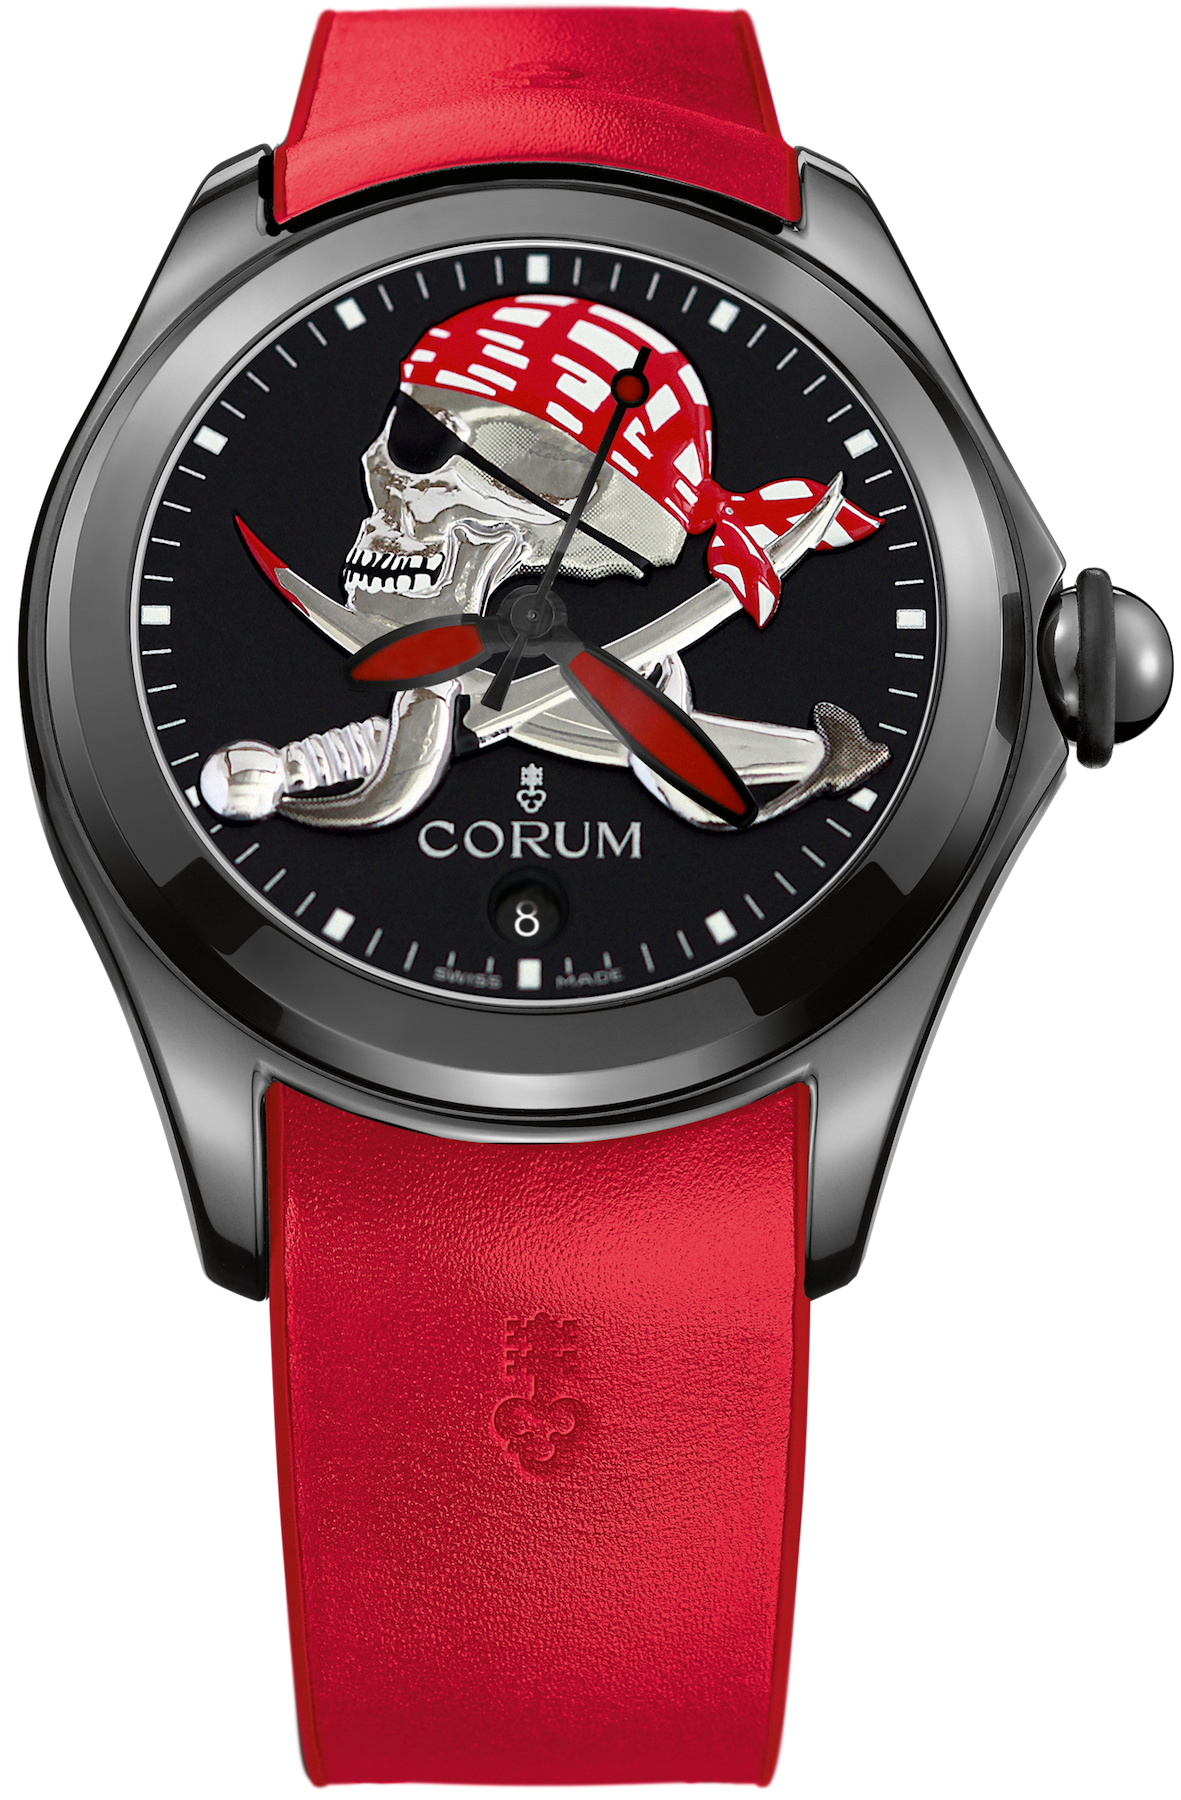 Bargain Corum Watch Bubble 47 Pirate Limited Edition Stockists